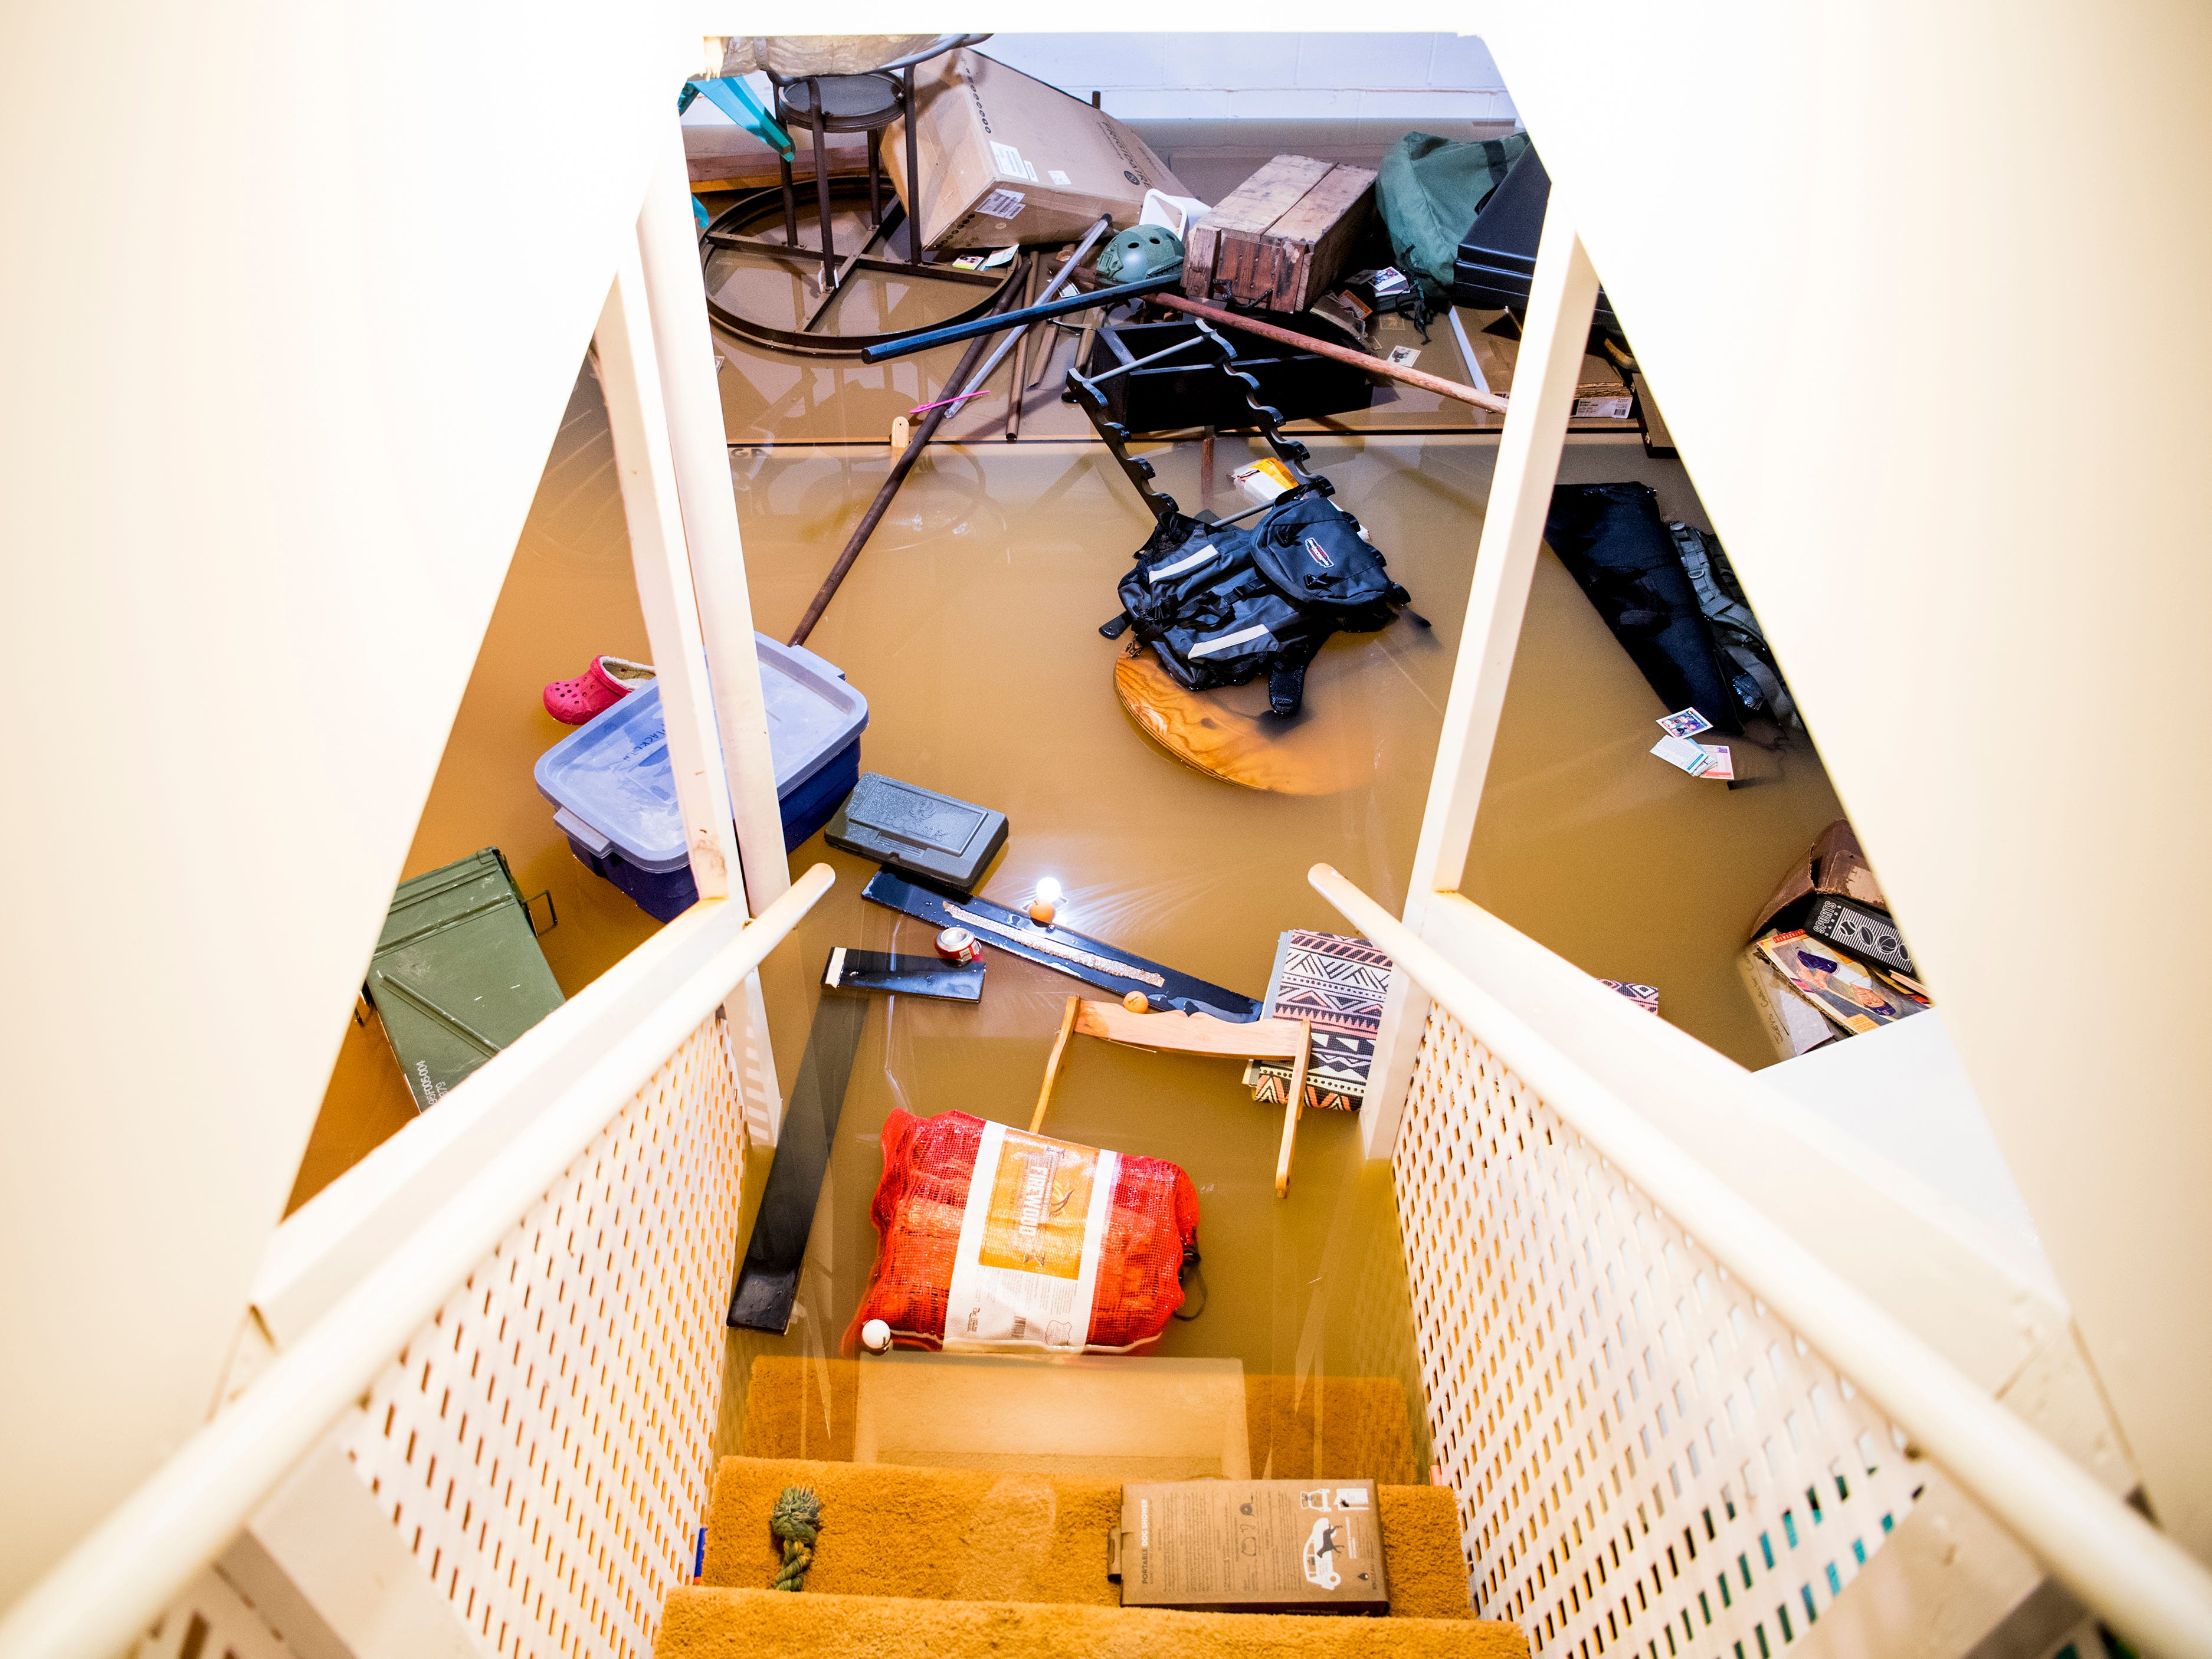 Jeff Macklin's basement at his home in the Lennox Place subdivision in Knoxville flooded with seven feet of water on Saturday. Three feet of water currently stand in his basement as of Monday, February 25, 2019.